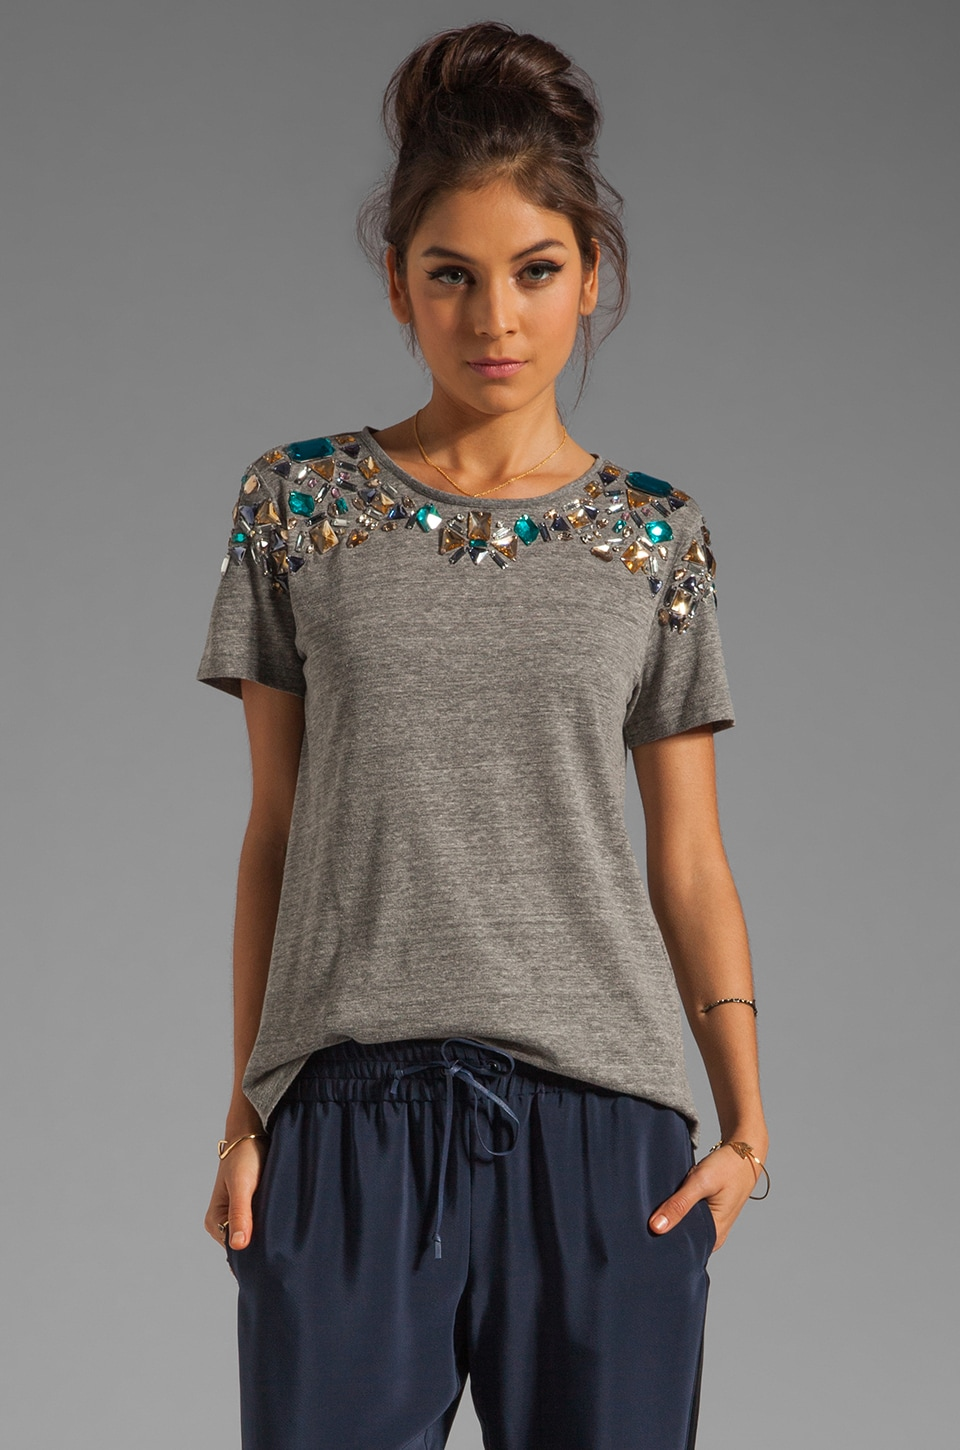 Elizabeth and James Victoria Tee in Heather Grey